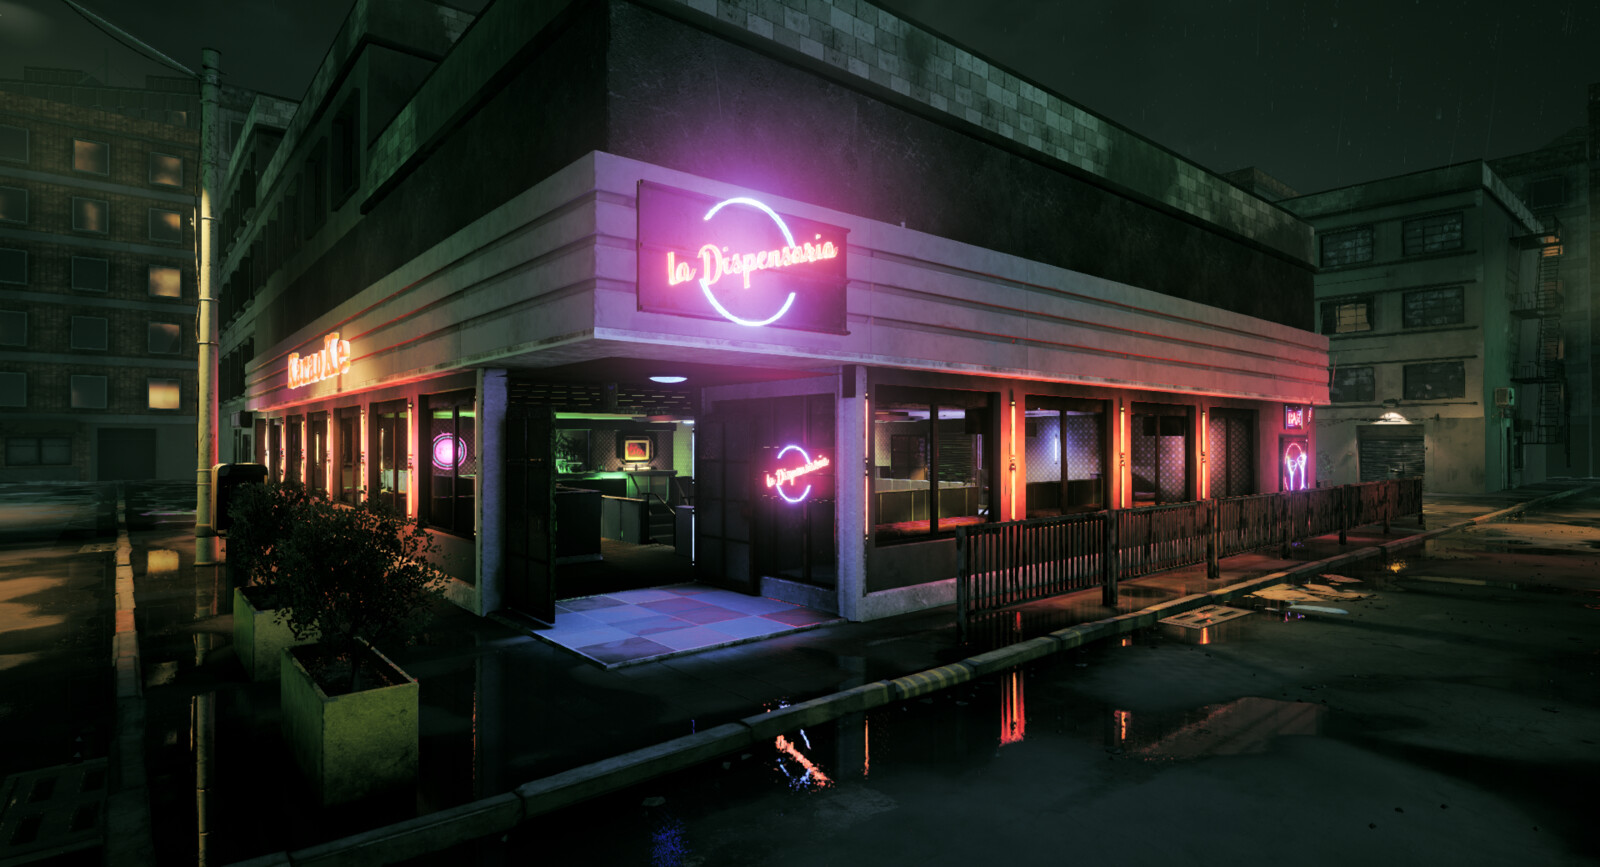 La Dispensaria Night Club from the Narcos TV show